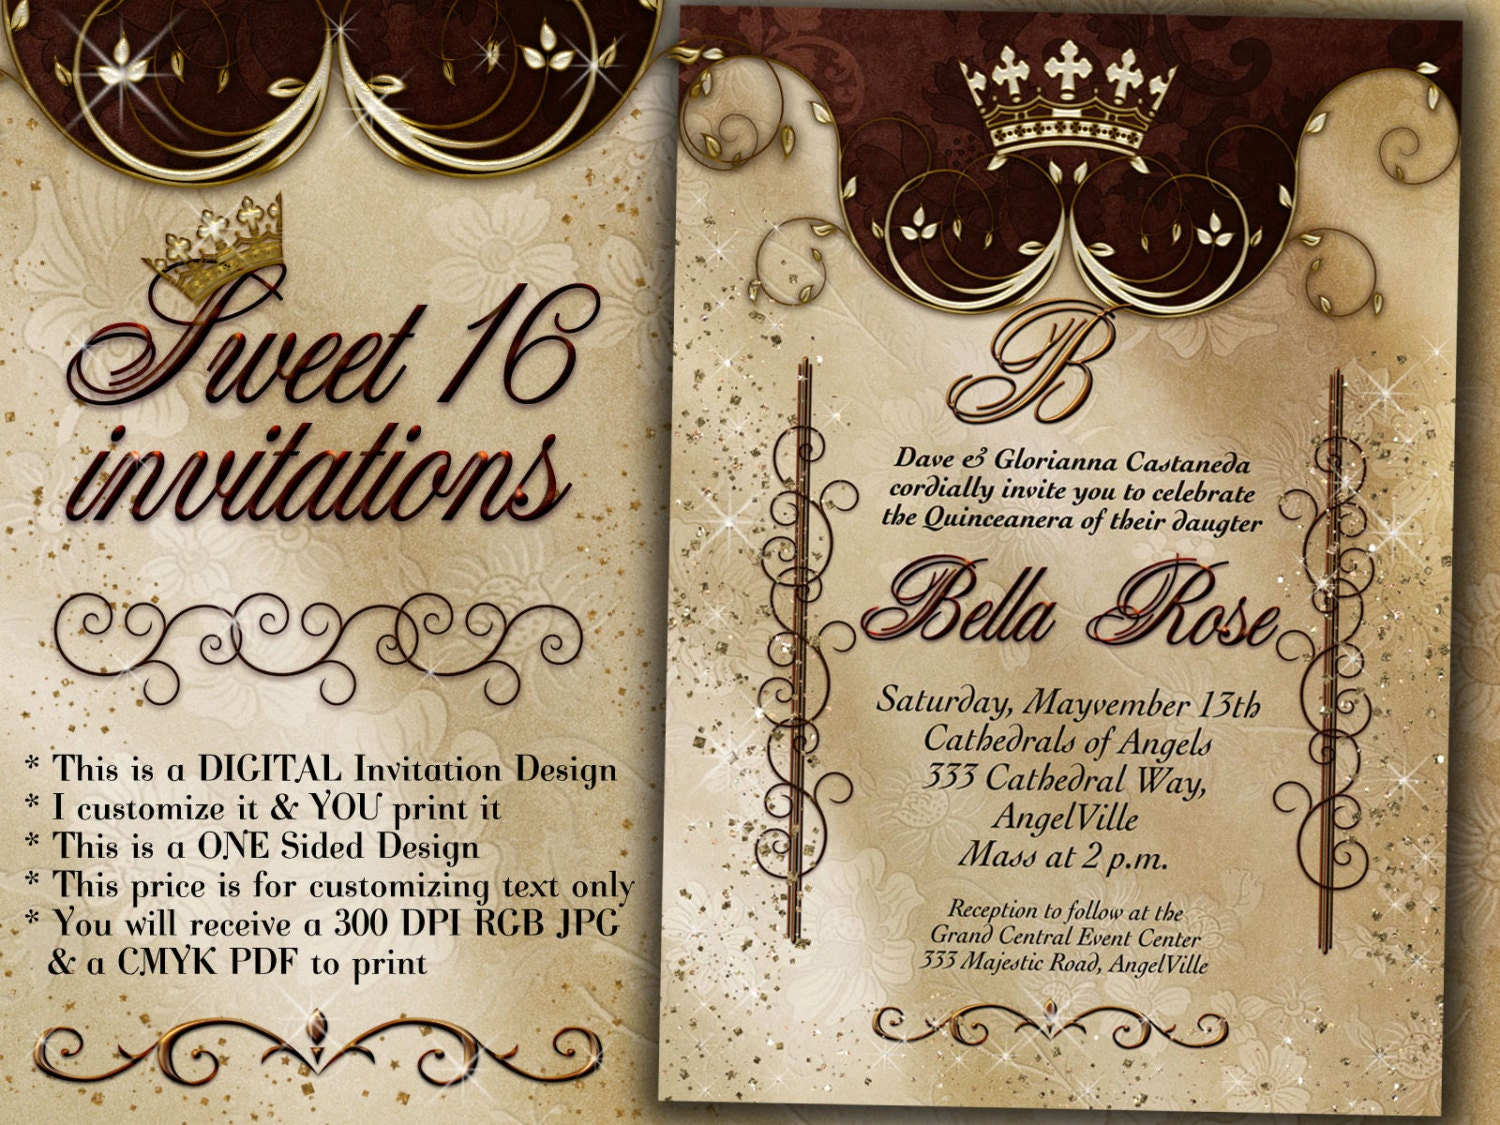 Birthday party invitations quinceanera invitation party zoom monicamarmolfo Image collections